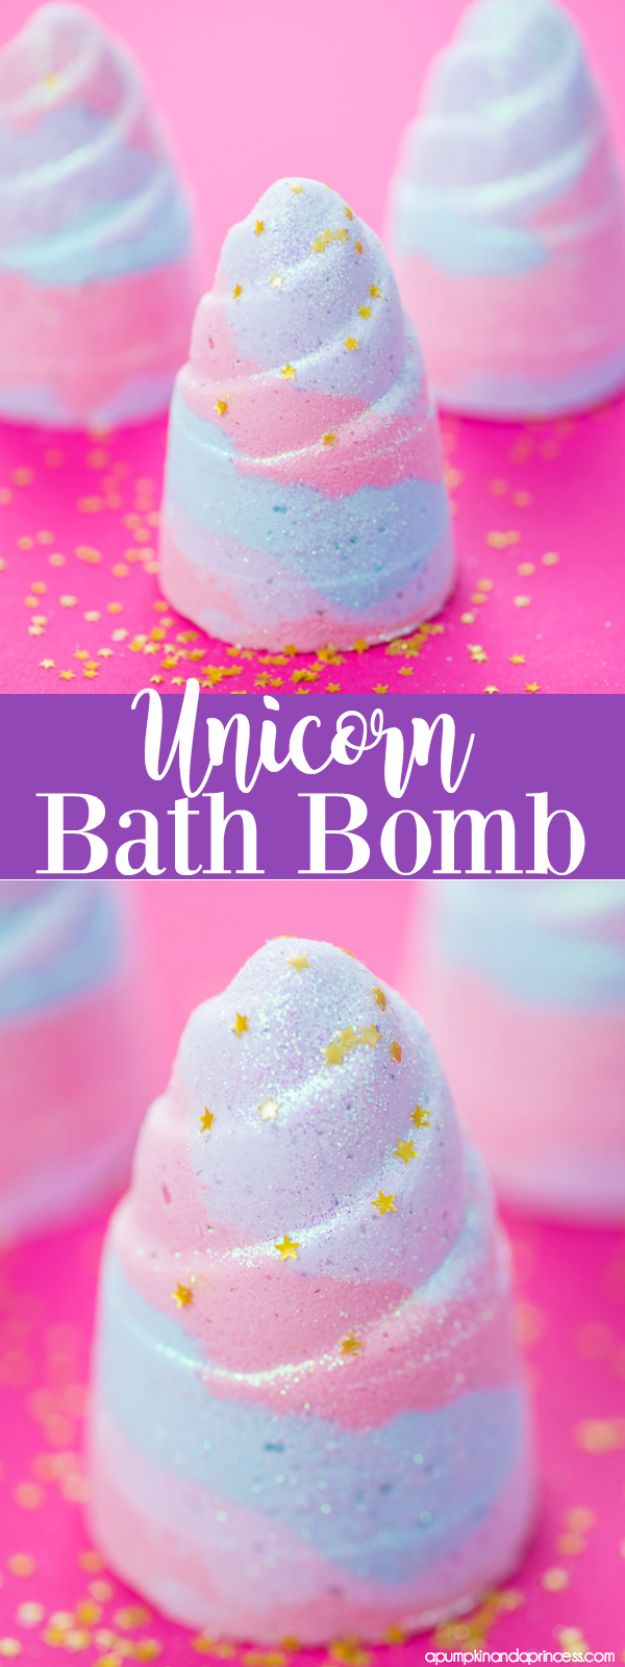 Cool DIY Bath Bombs to Make At Home - Unicorn Bath Bomb - Recipes and Tutorial for How To Make A Bath Bomb - Best Bathbomb Ideas - Fun DIY Projects for Women, Teens, and Girls | DIY Bath Bombs Recipe and Tutorials | Make Cheap Gifts Like Lush Bath Bombs #bathbombs #teencrafts #diyideas